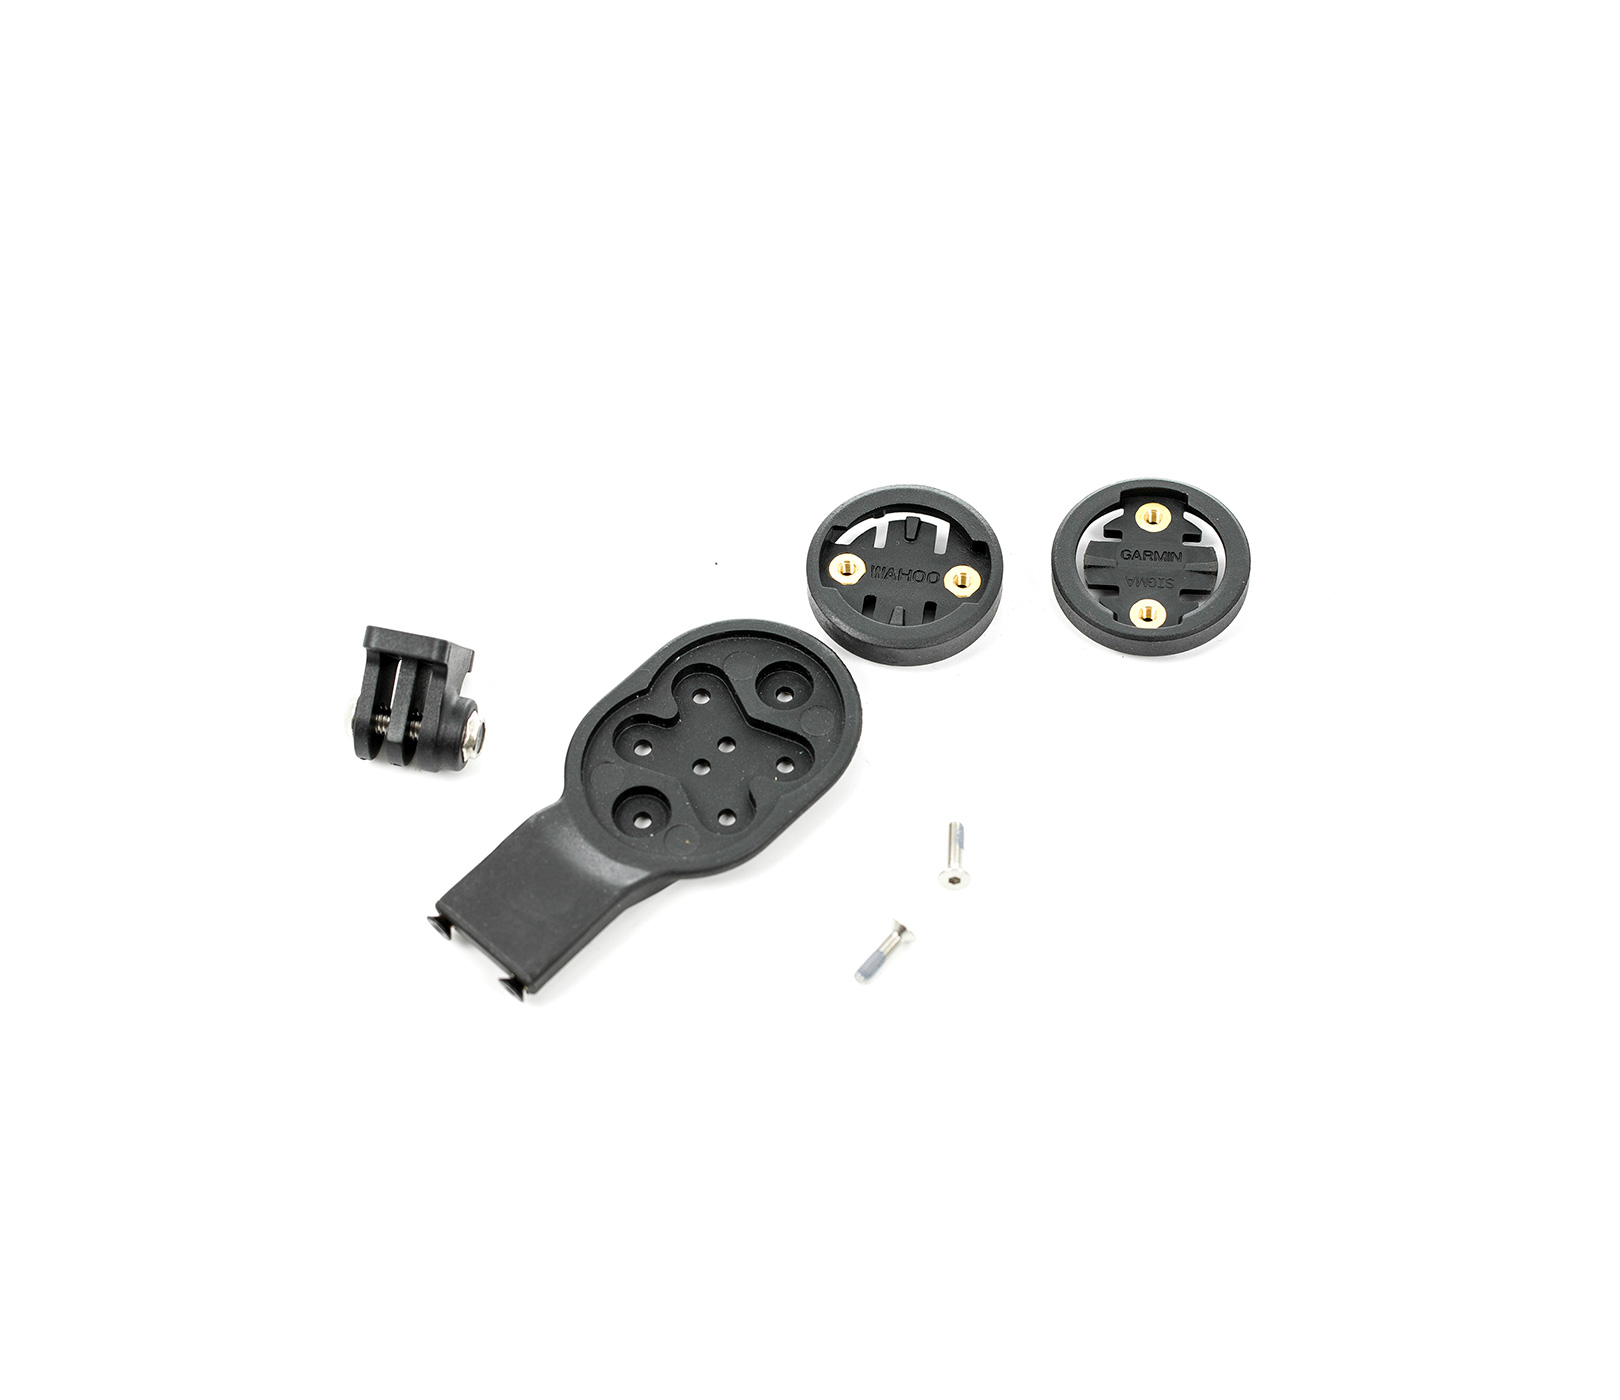 OC COMPONENTS STEMS CYCLE COMPUTER BRACKET KIT